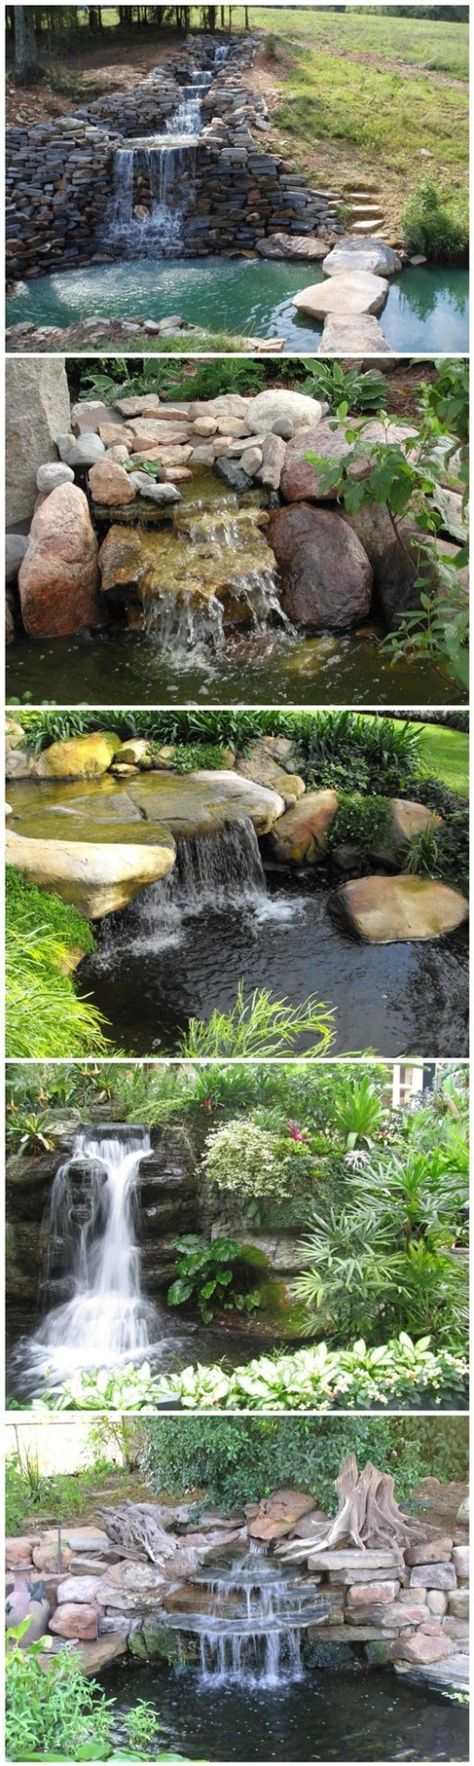 Best 25 pond waterfall ideas on pinterest diy waterfall for Pond building ideas